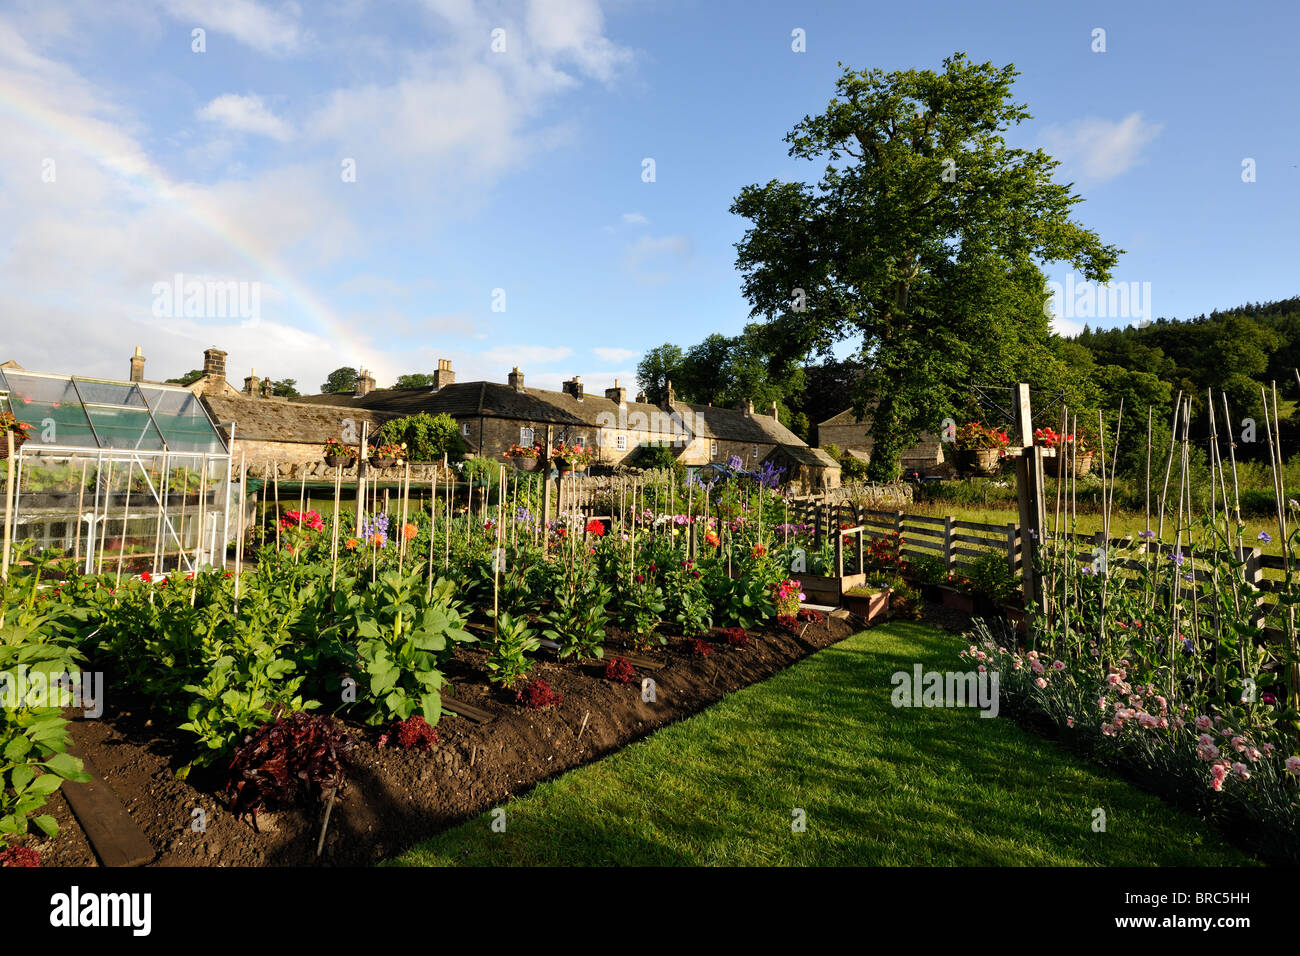 Ordered rows in a garden in the medieval village of Blanchland, Northumberland - Stock Image